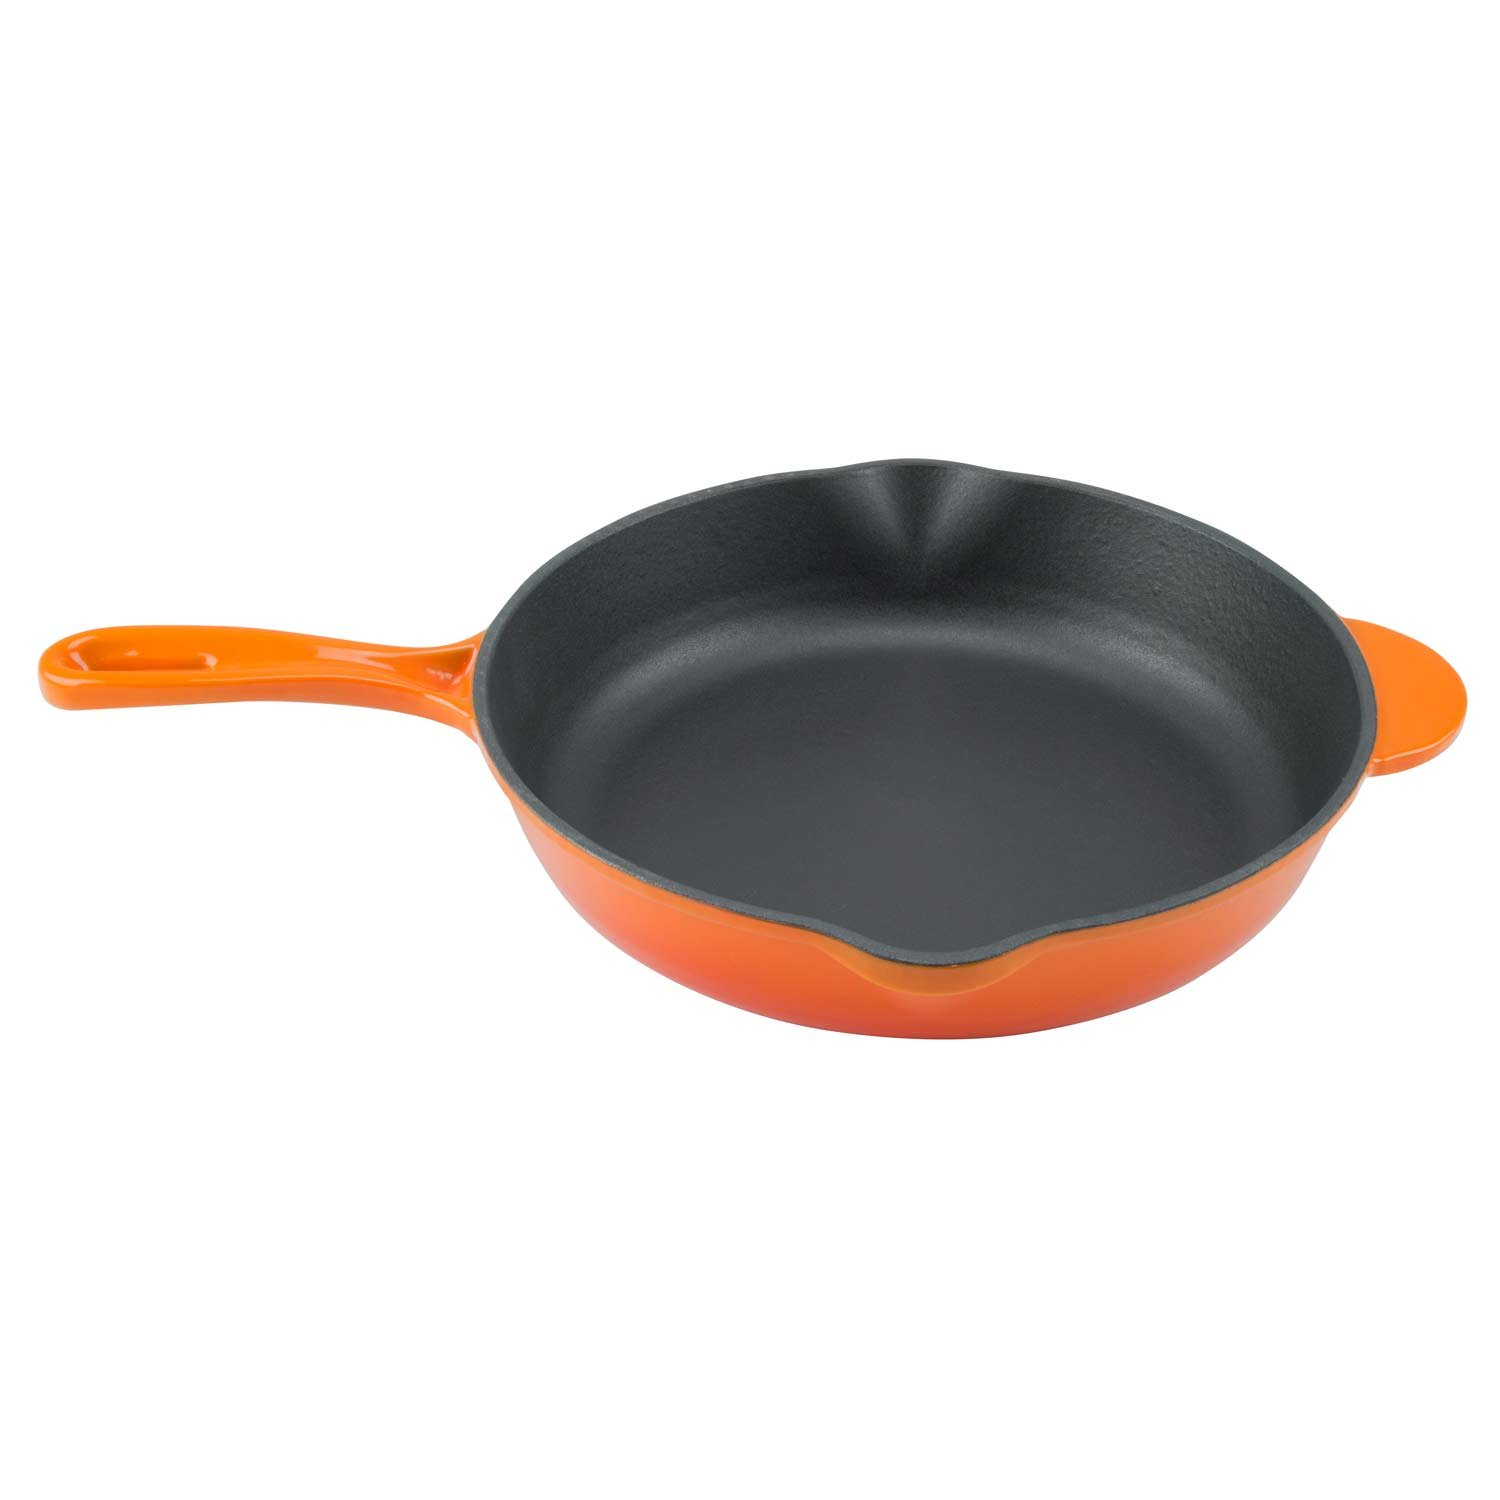 Zelancio Enameled 10-Inch Cast Iron Skillet, Oven Safe Smooth Surface Frying Pan. Perfect for Steak, Fajitas, Eggs, and So Much More, Orange